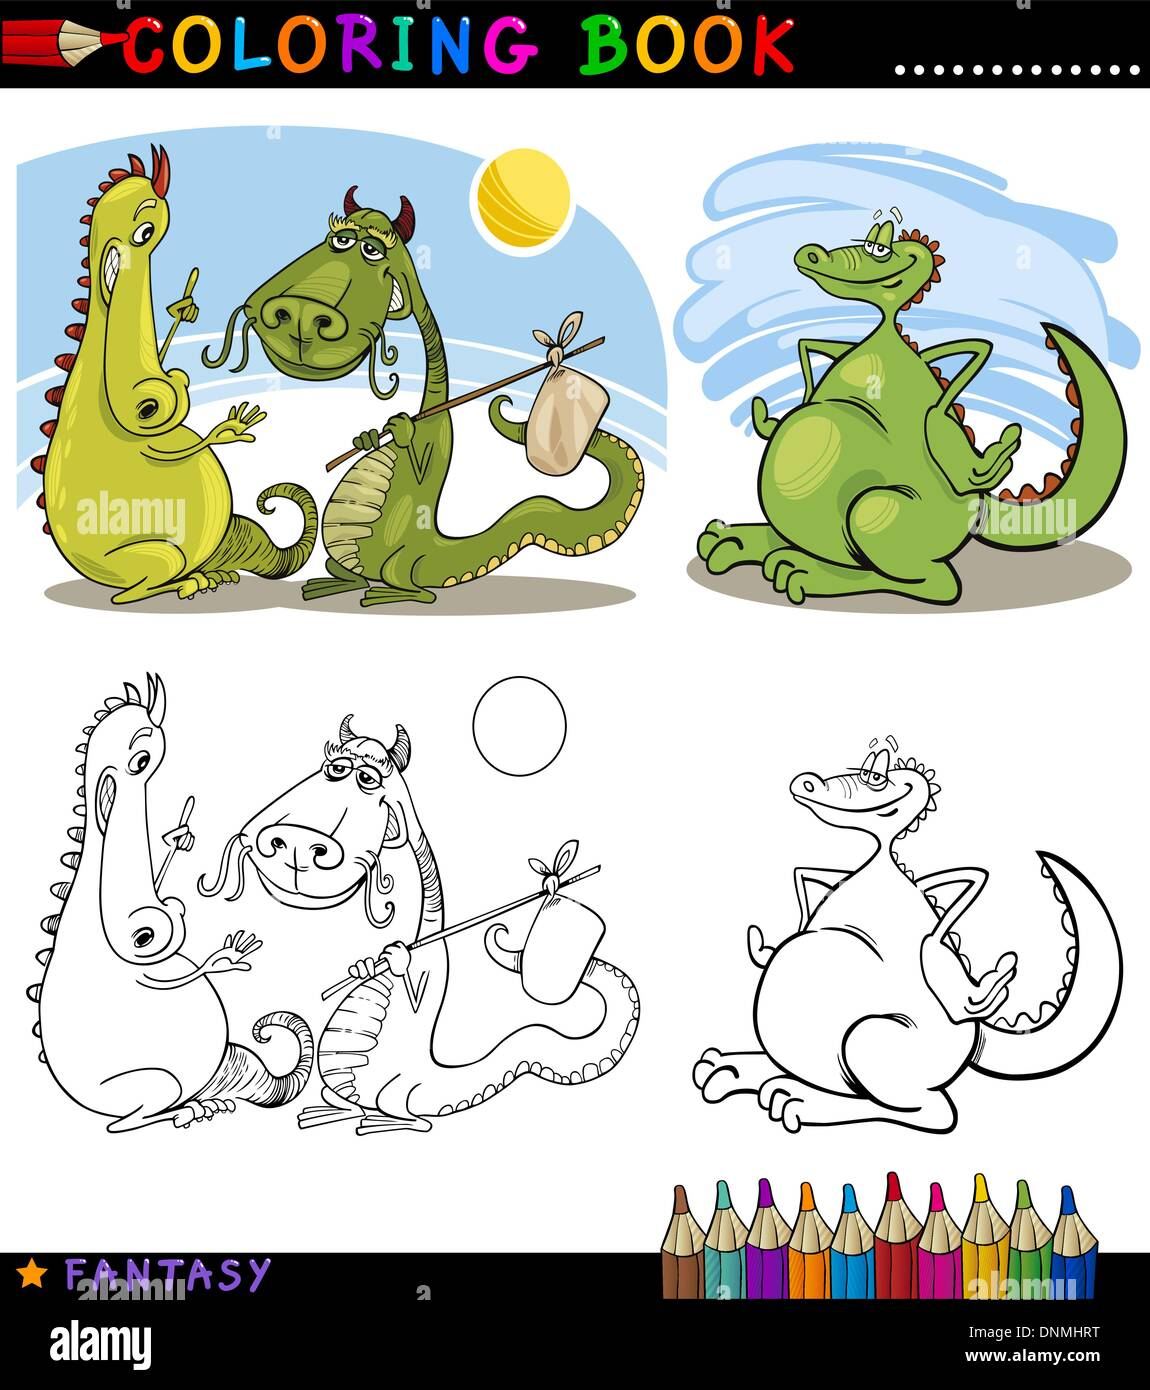 Coloring Book Or Page Cartoon Illustration Of Dragons Fairytale Stock Vector Image Art Alamy